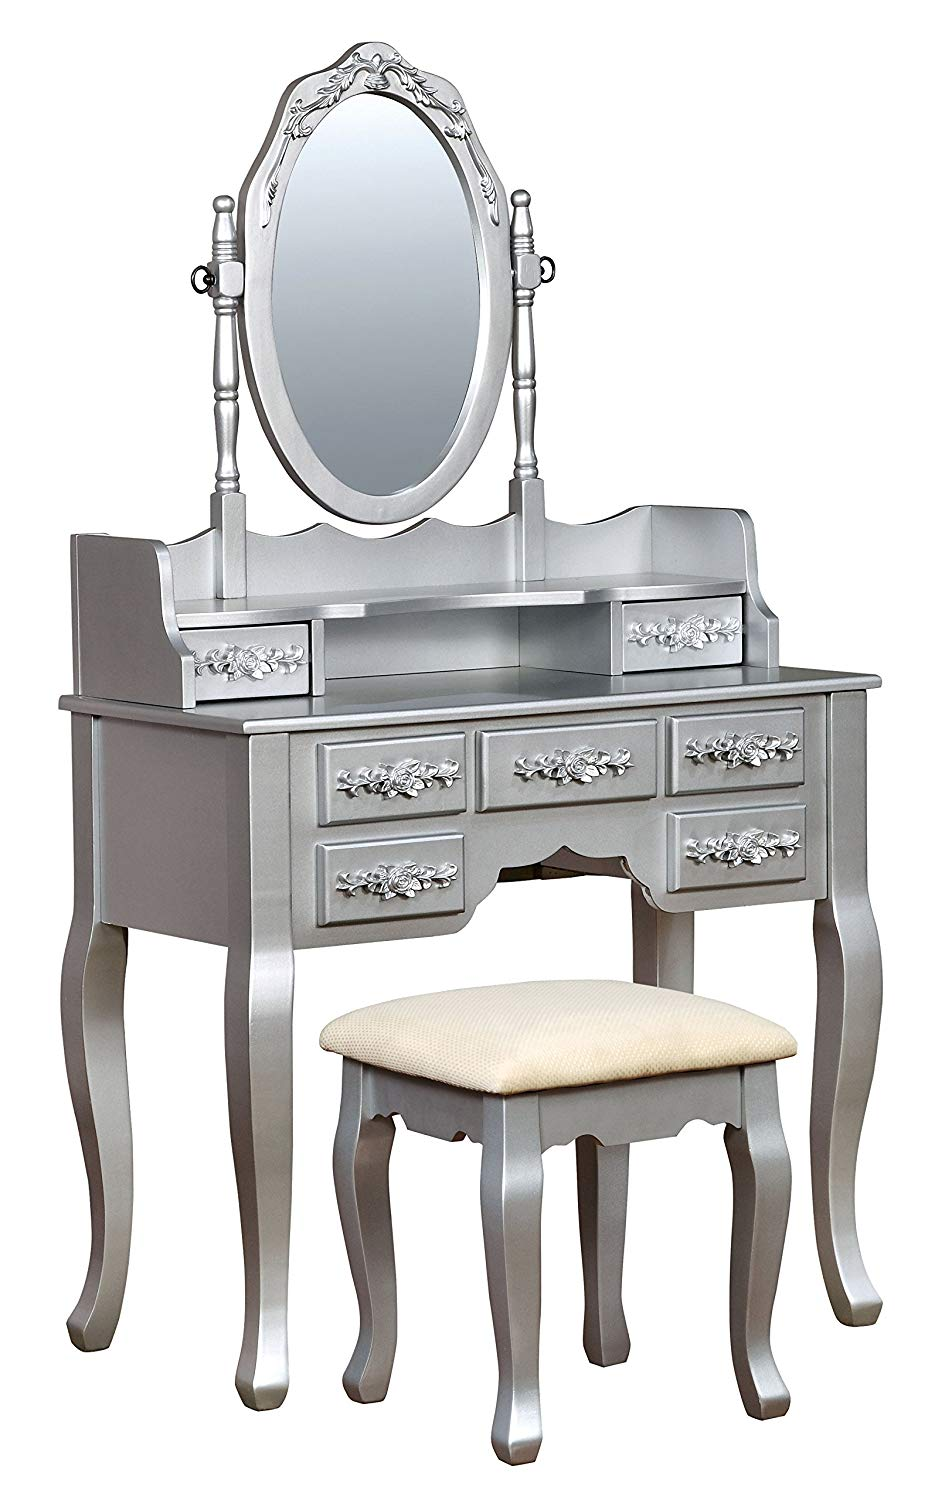 IDF-DK6845SV Gala Transitional Vanity Table with Stool, Silver